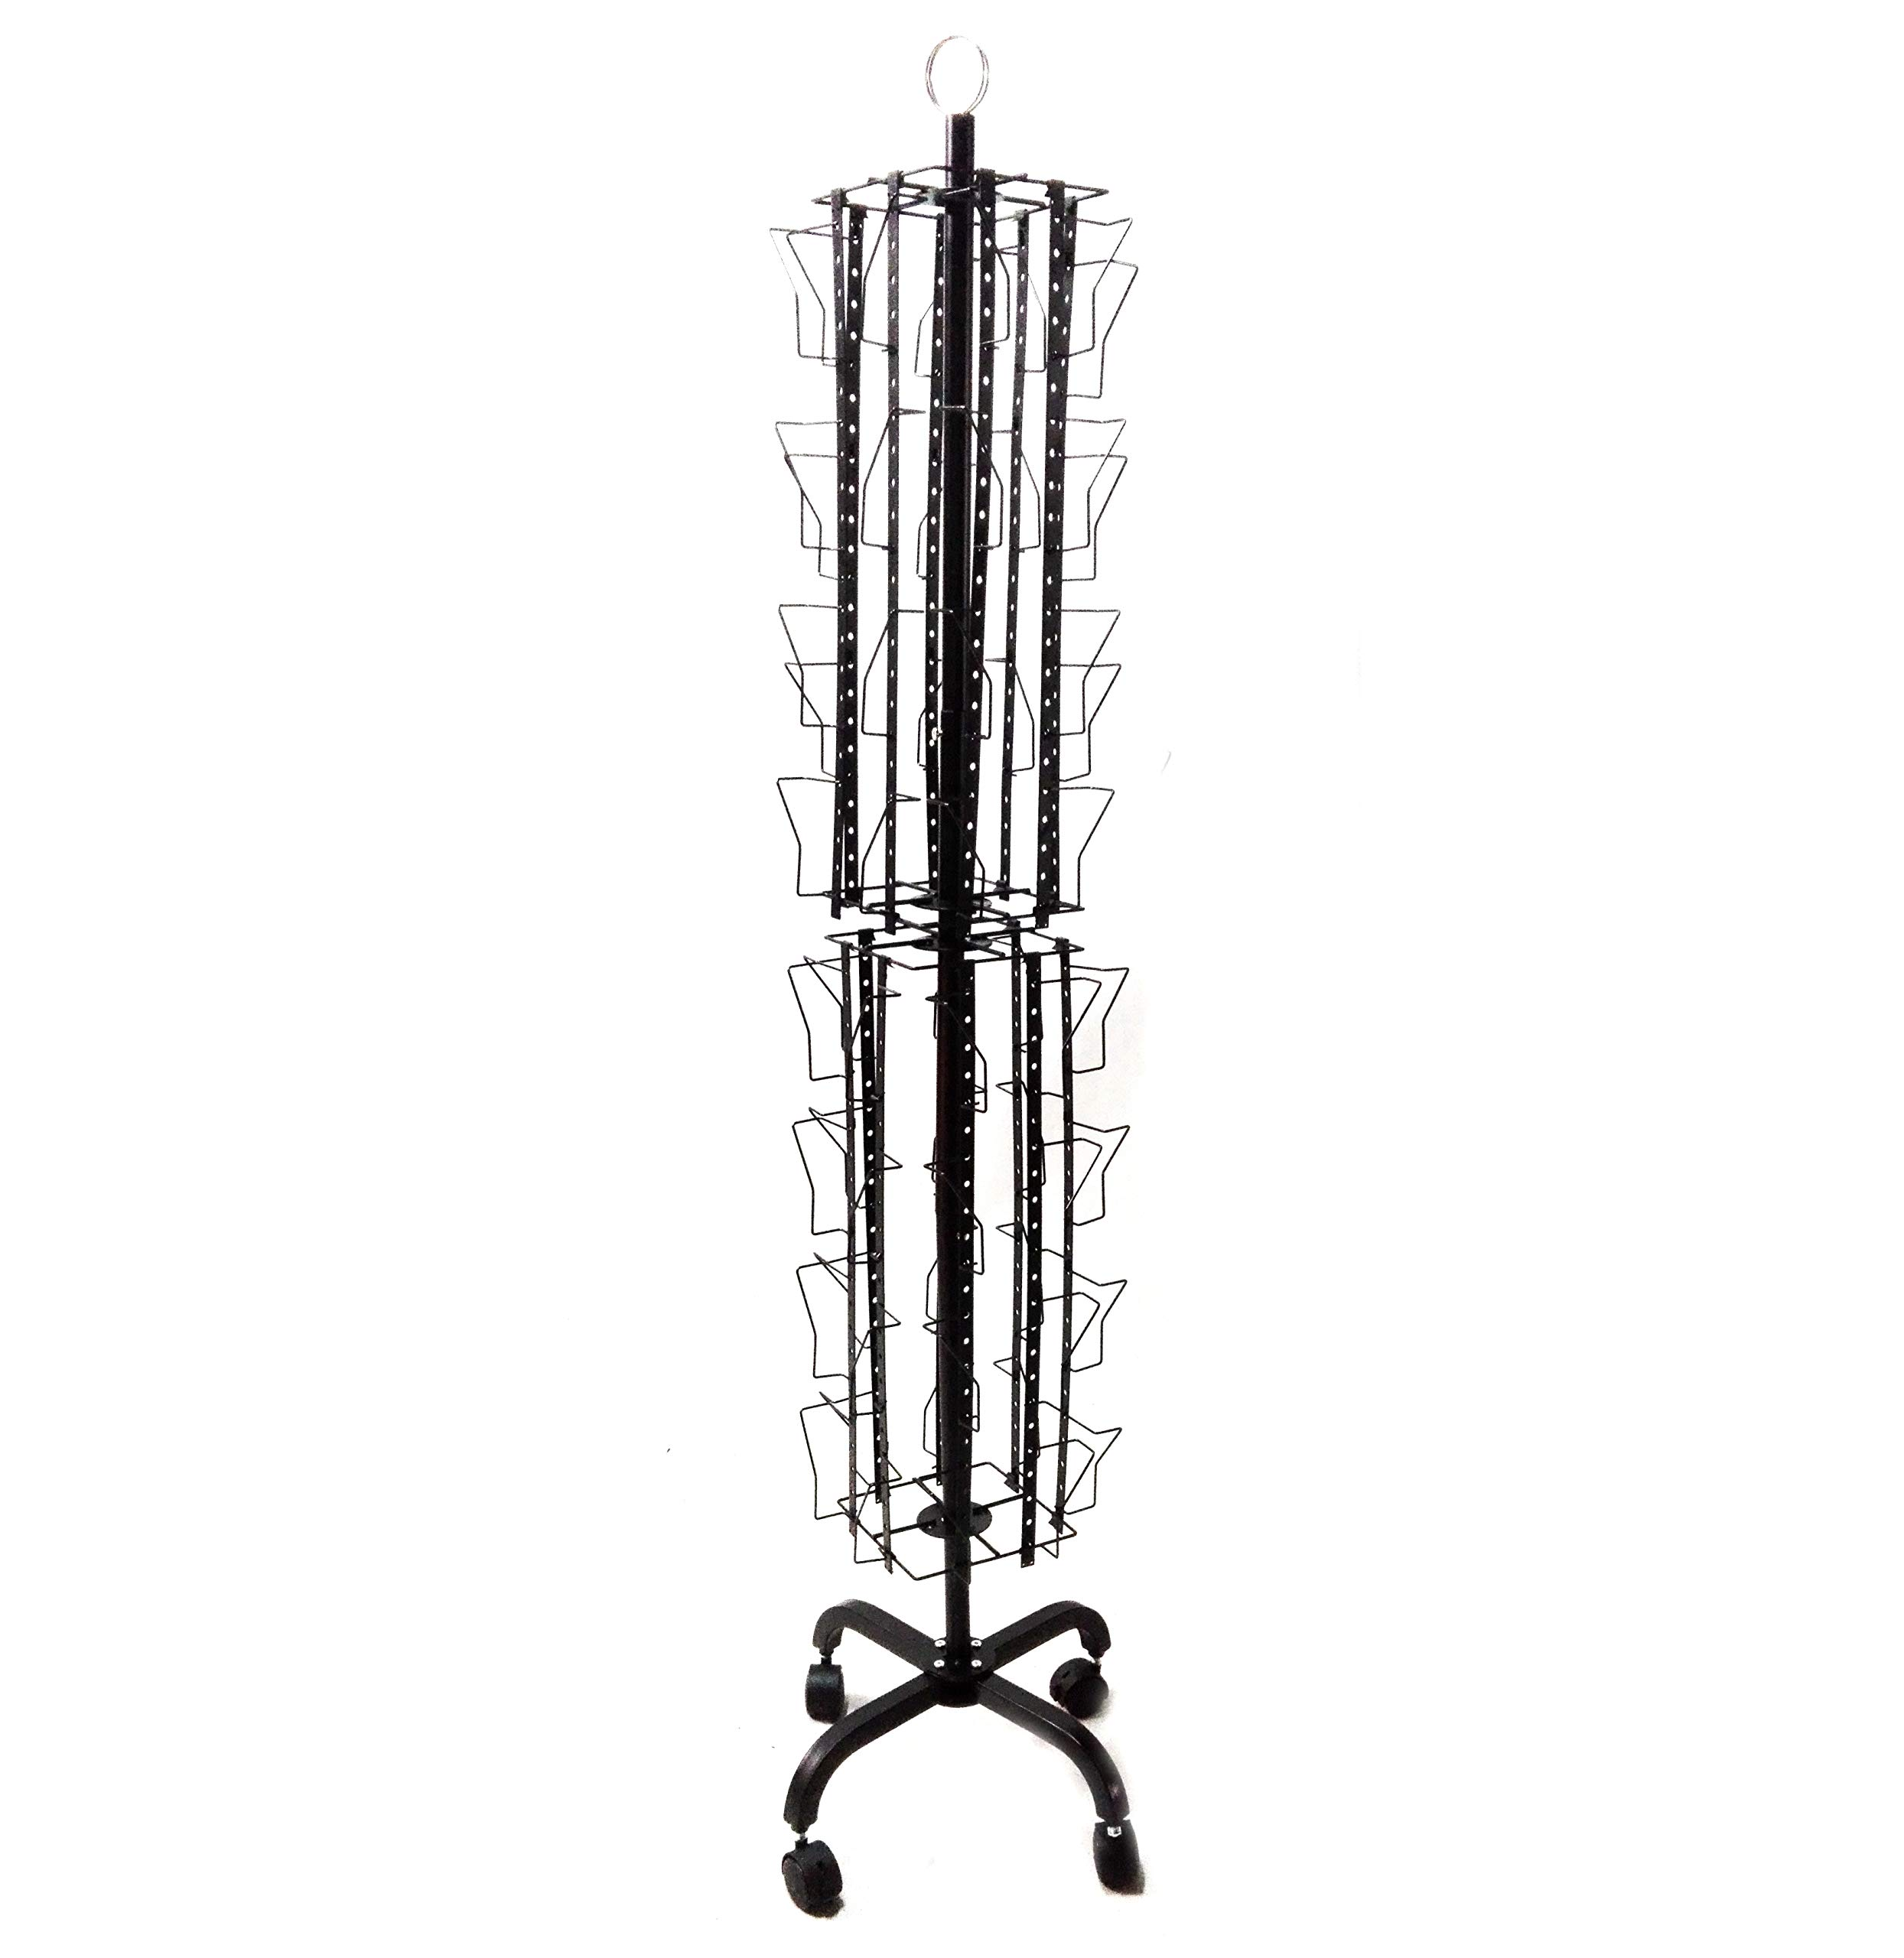 FixtureDisplays Up to 9.8'' Wide 32-Pocket Adjustable Display Rack, Double Tier Greeting Post Card Christmas Holiday Spinning Rack Stand 11603-BLACK by FixtureDisplays